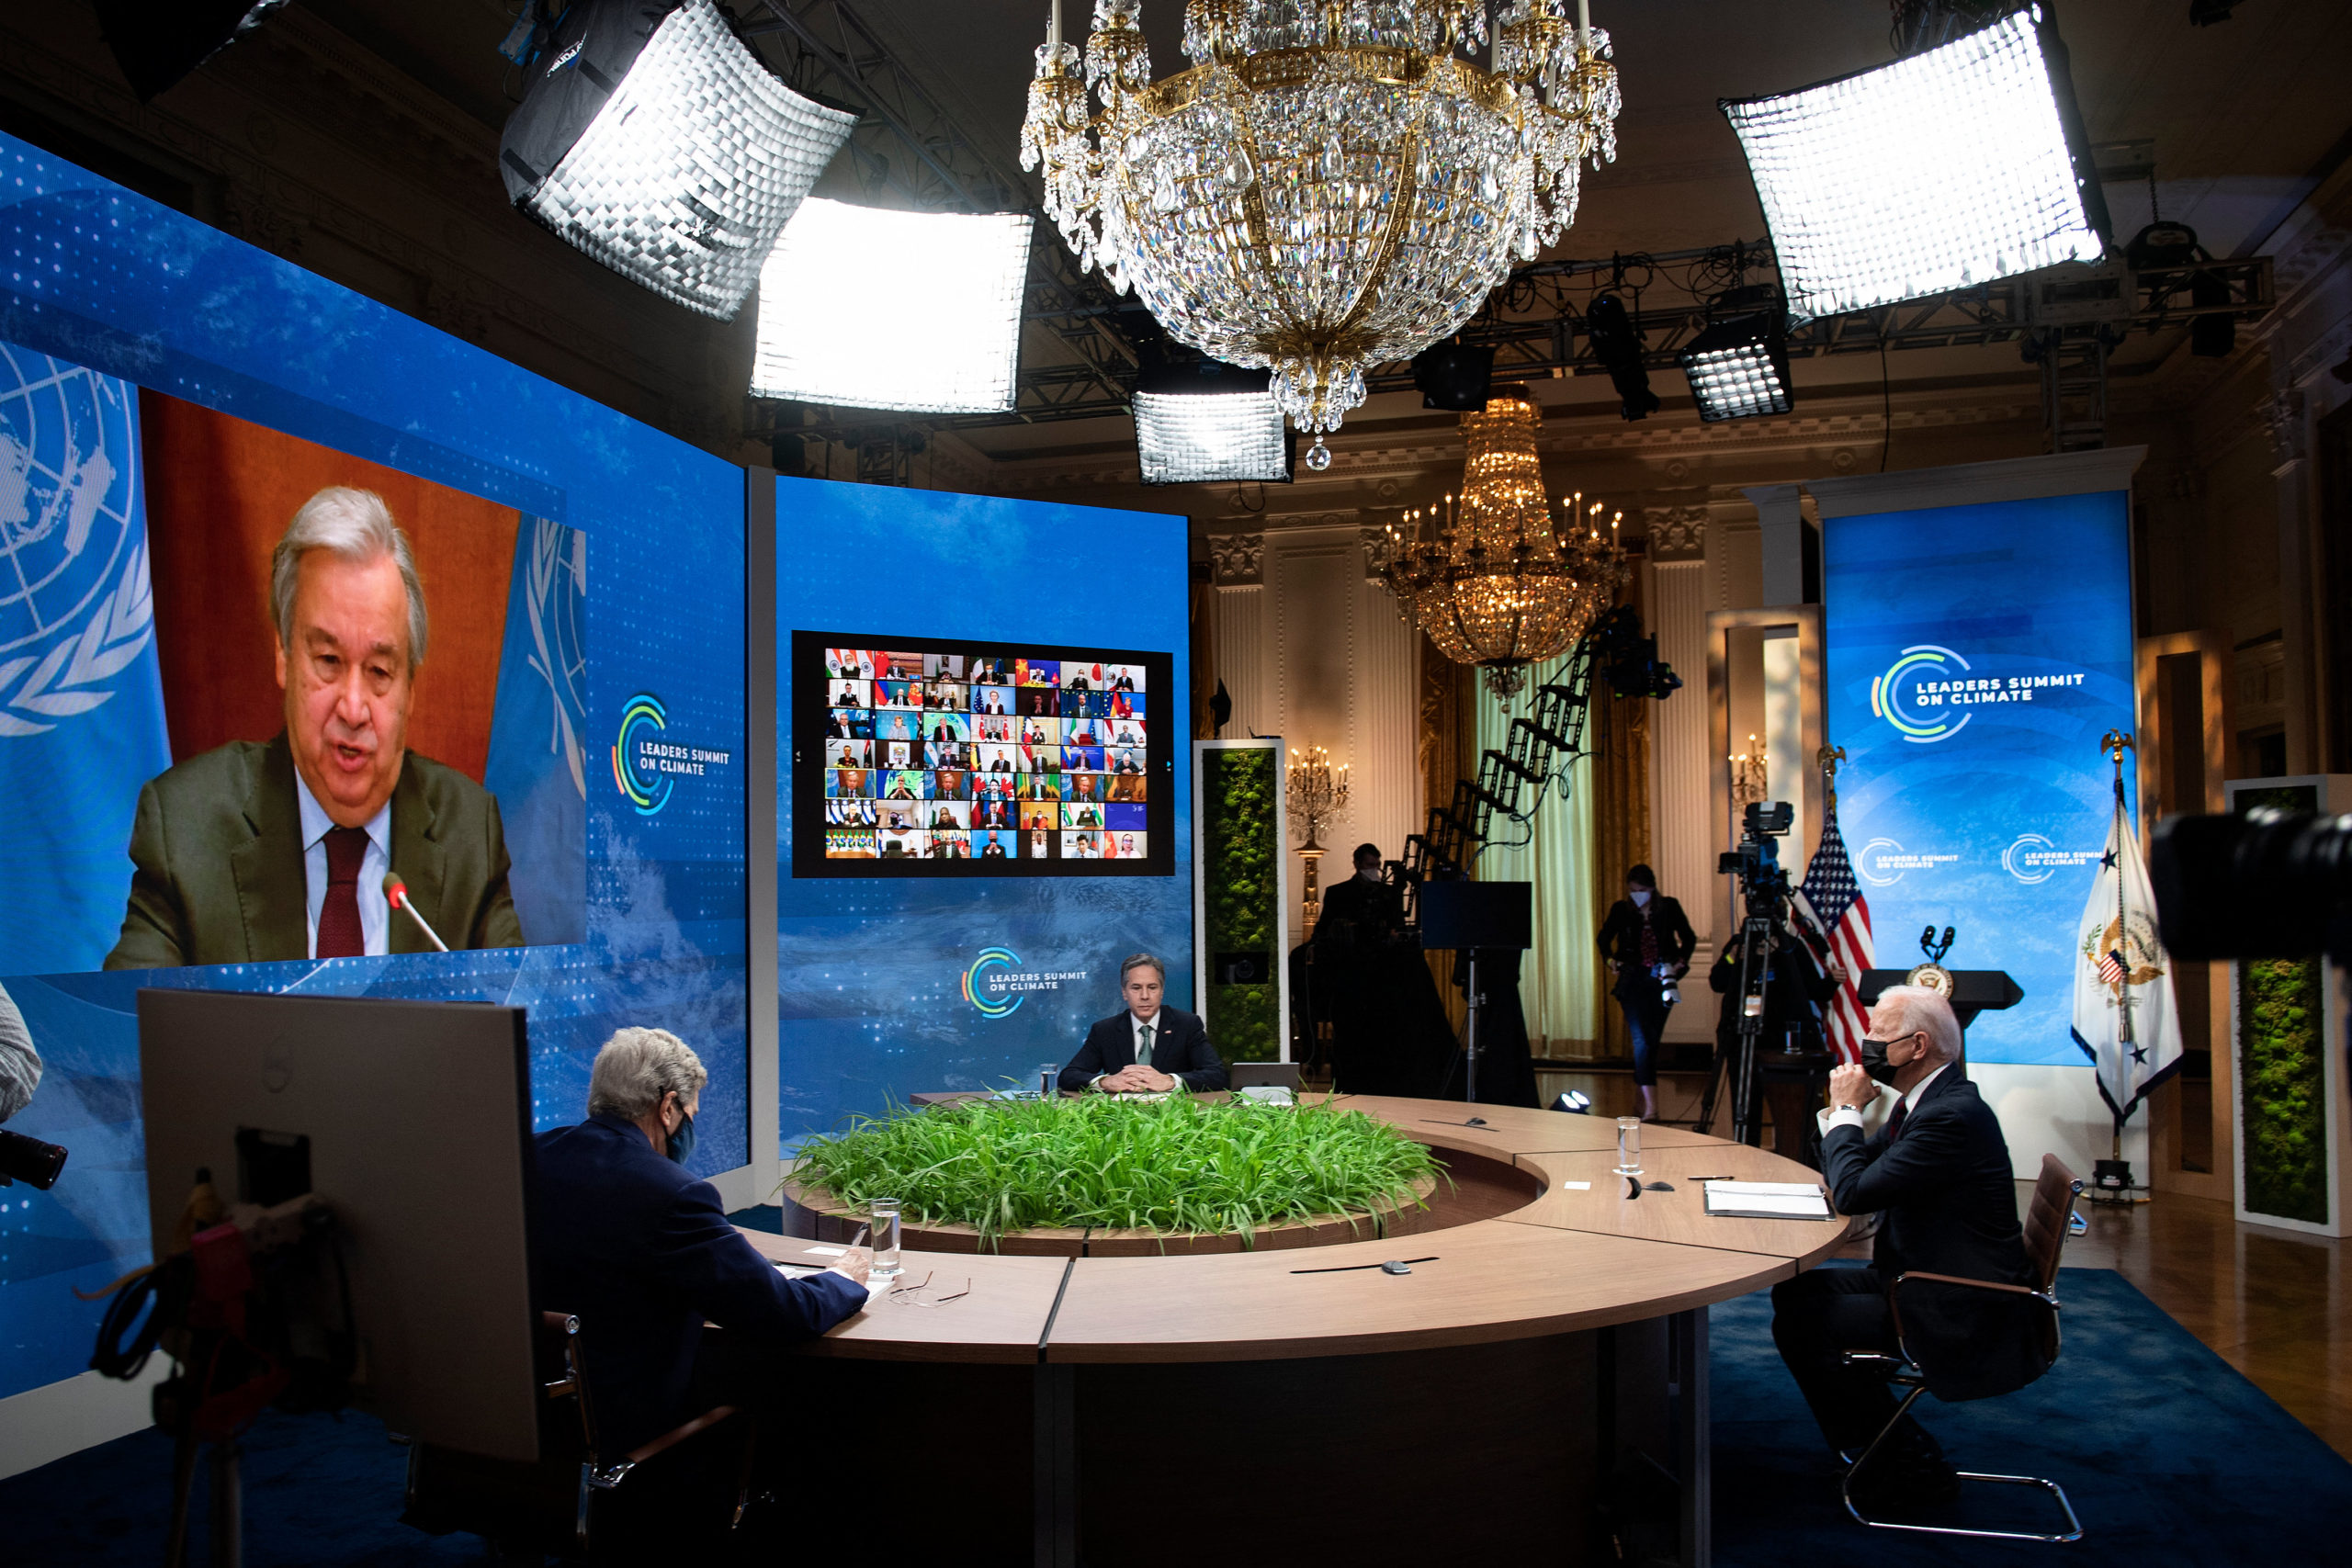 John Kerry, Secretary of State Antony Blinken, and President Joe Biden participate in a climate change virtual summit from the White House in April. (BRENDAN SMIALOWSKI/AFP via Getty Images)